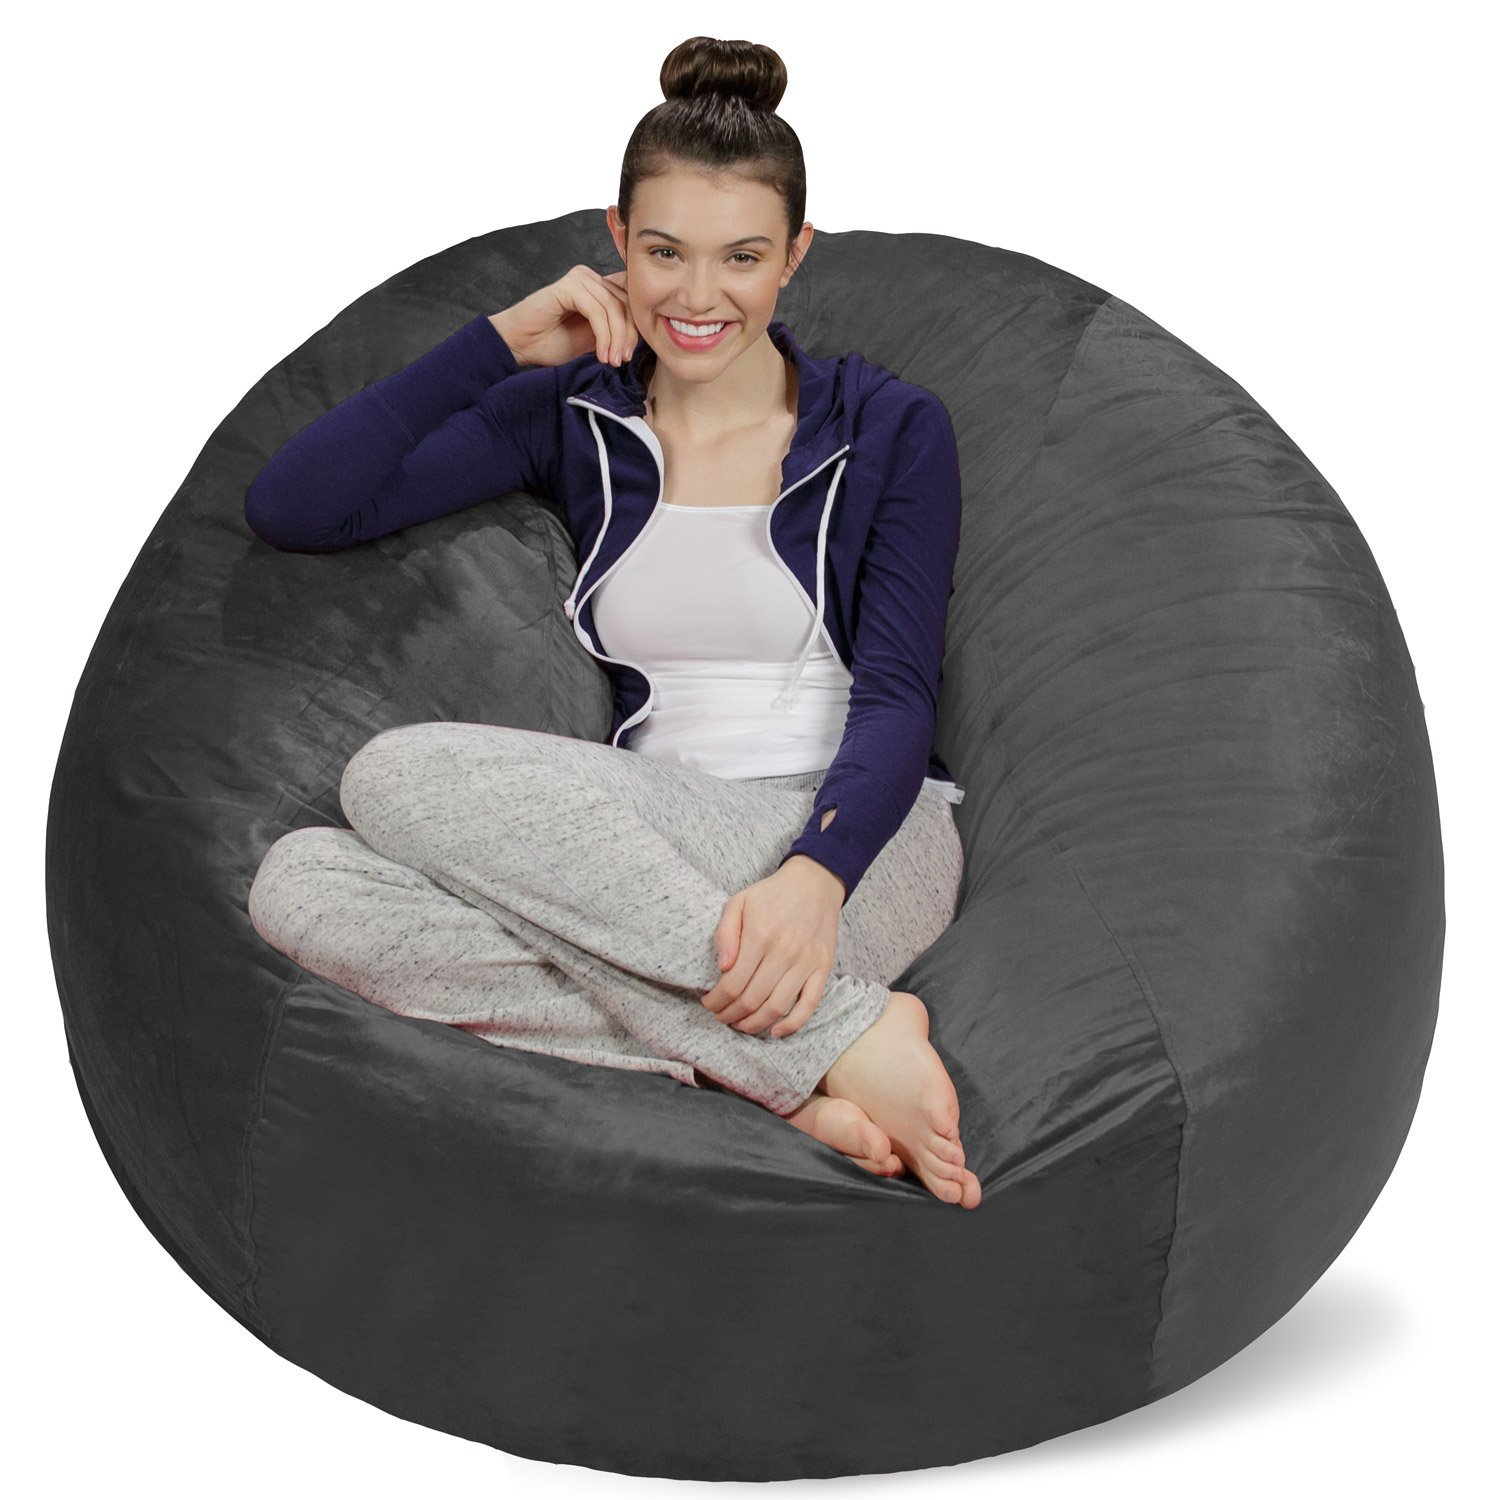 Traveller Location: Sofa Sack - Plush Ultra Soft Bean Bags Chairs For Kids, Teens,  Adults - Memory Foam Beanless Bag Chair with Microsuede Cover - Foam Filled